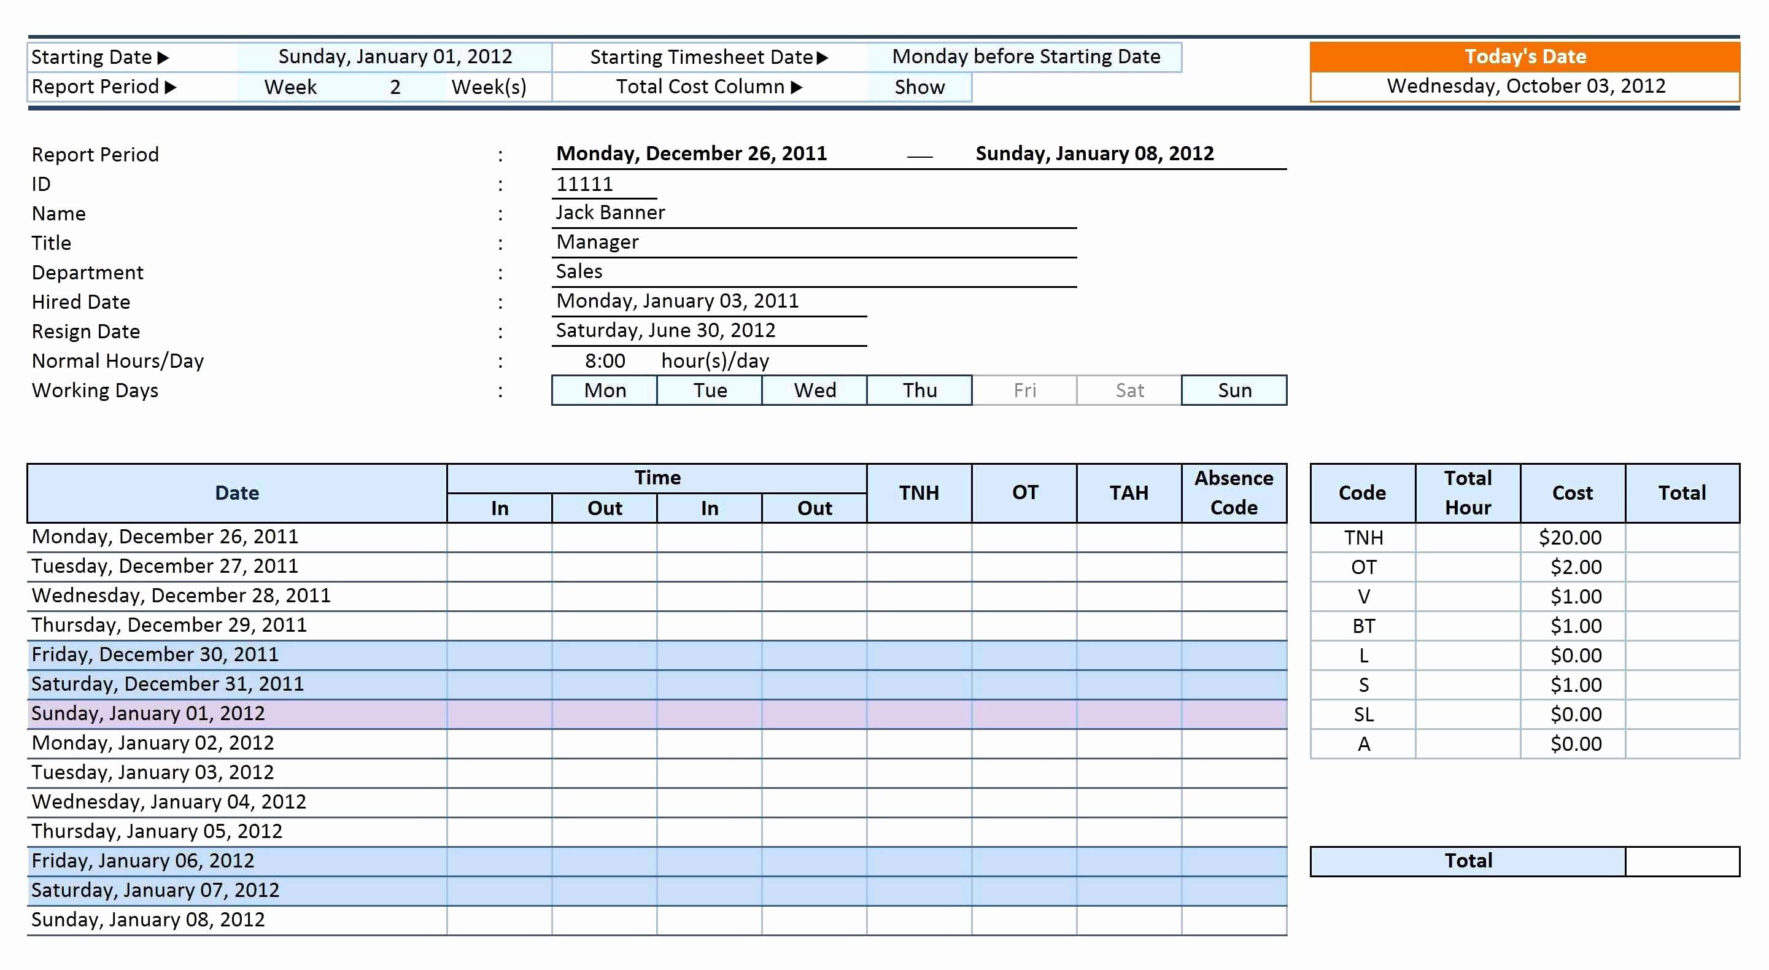 Timesheet Spreadsheet Formula With Excel Timesheet Template With Formulas  Spreadsheet Collections